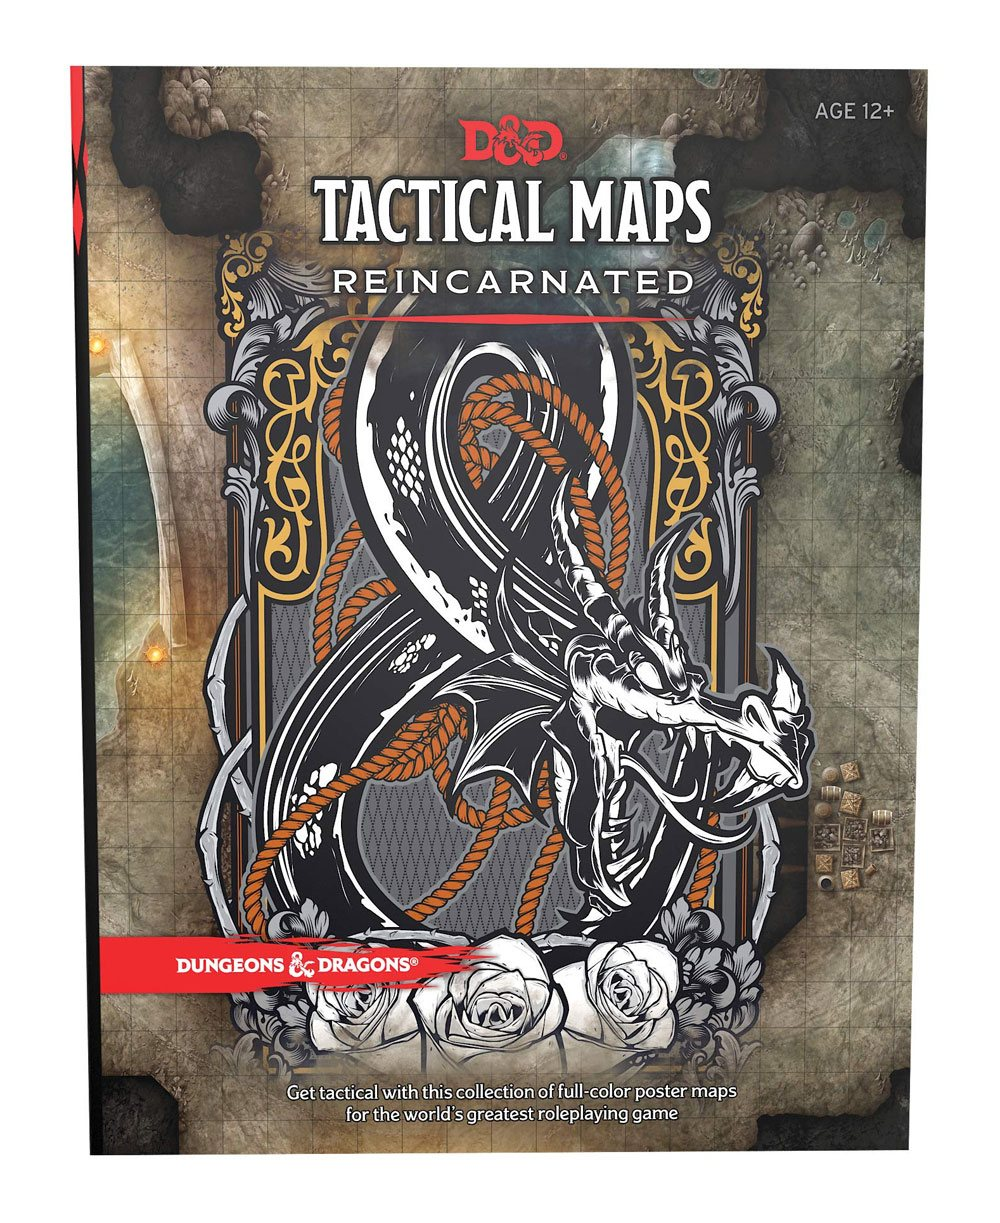 Dungeons & Dragons RPG Tactical Maps Reincarnated EN